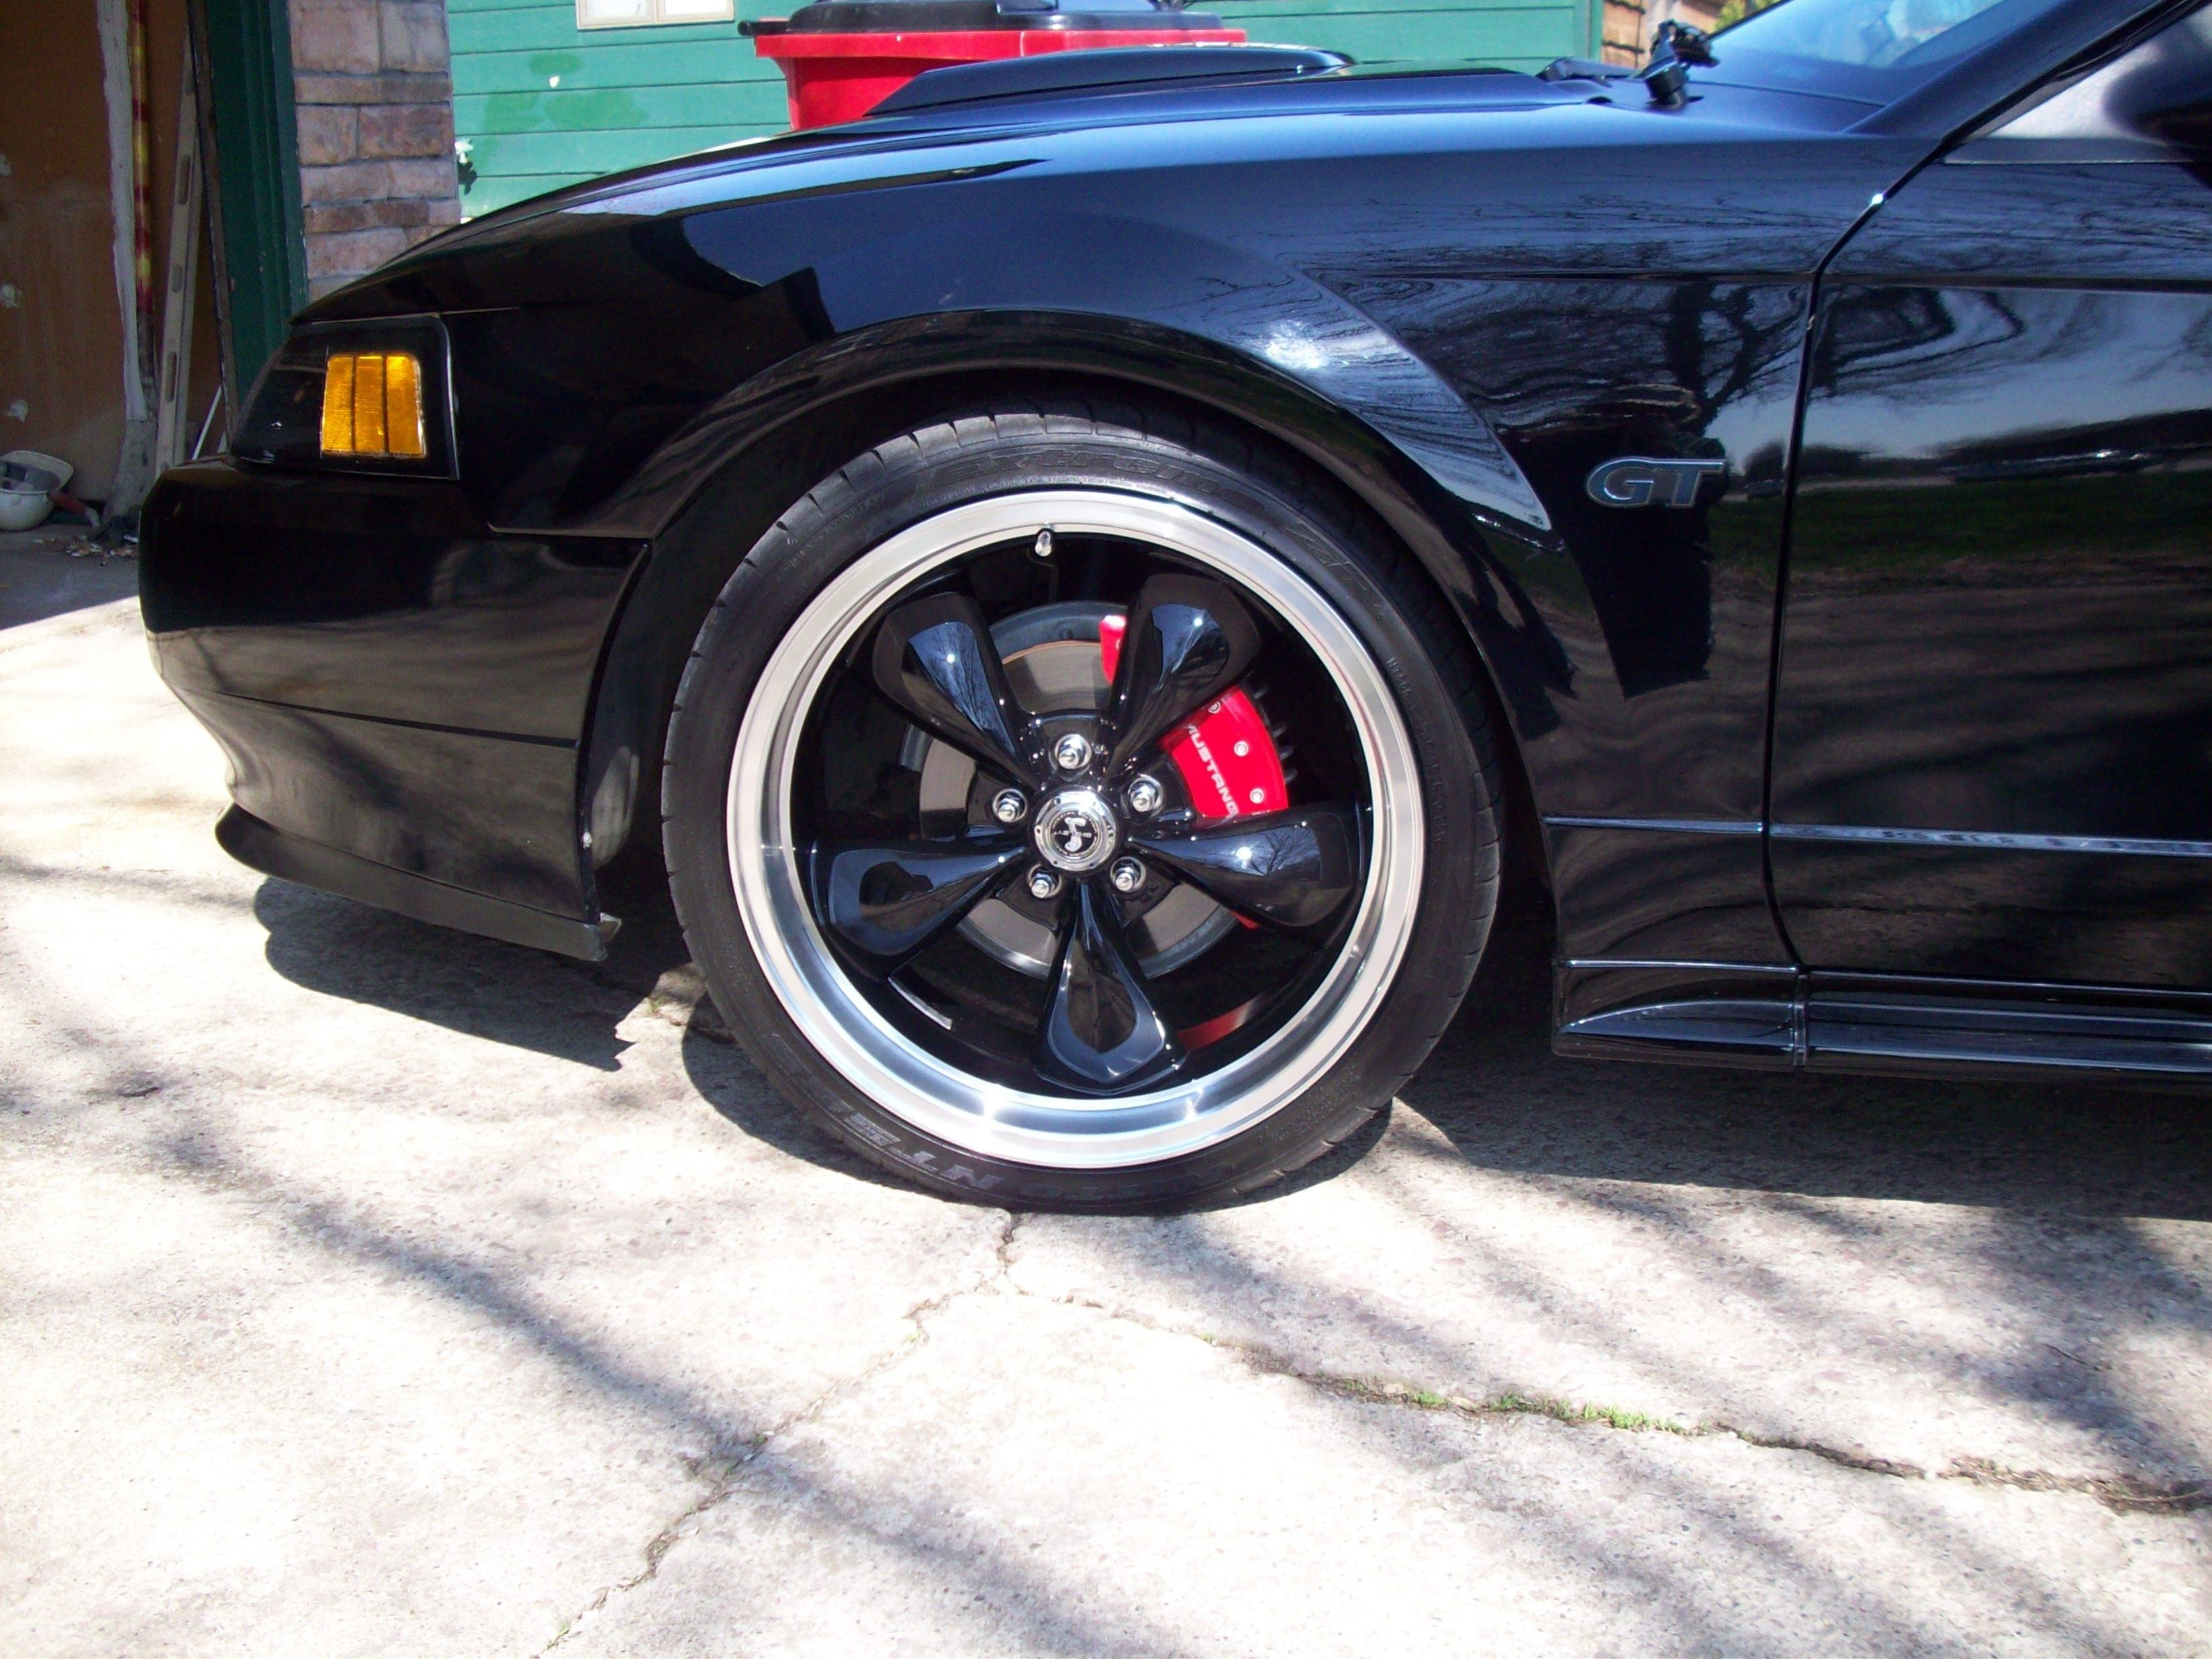 Best rims for gloss black Mustang? - Page 2 - Ford Mustang ...